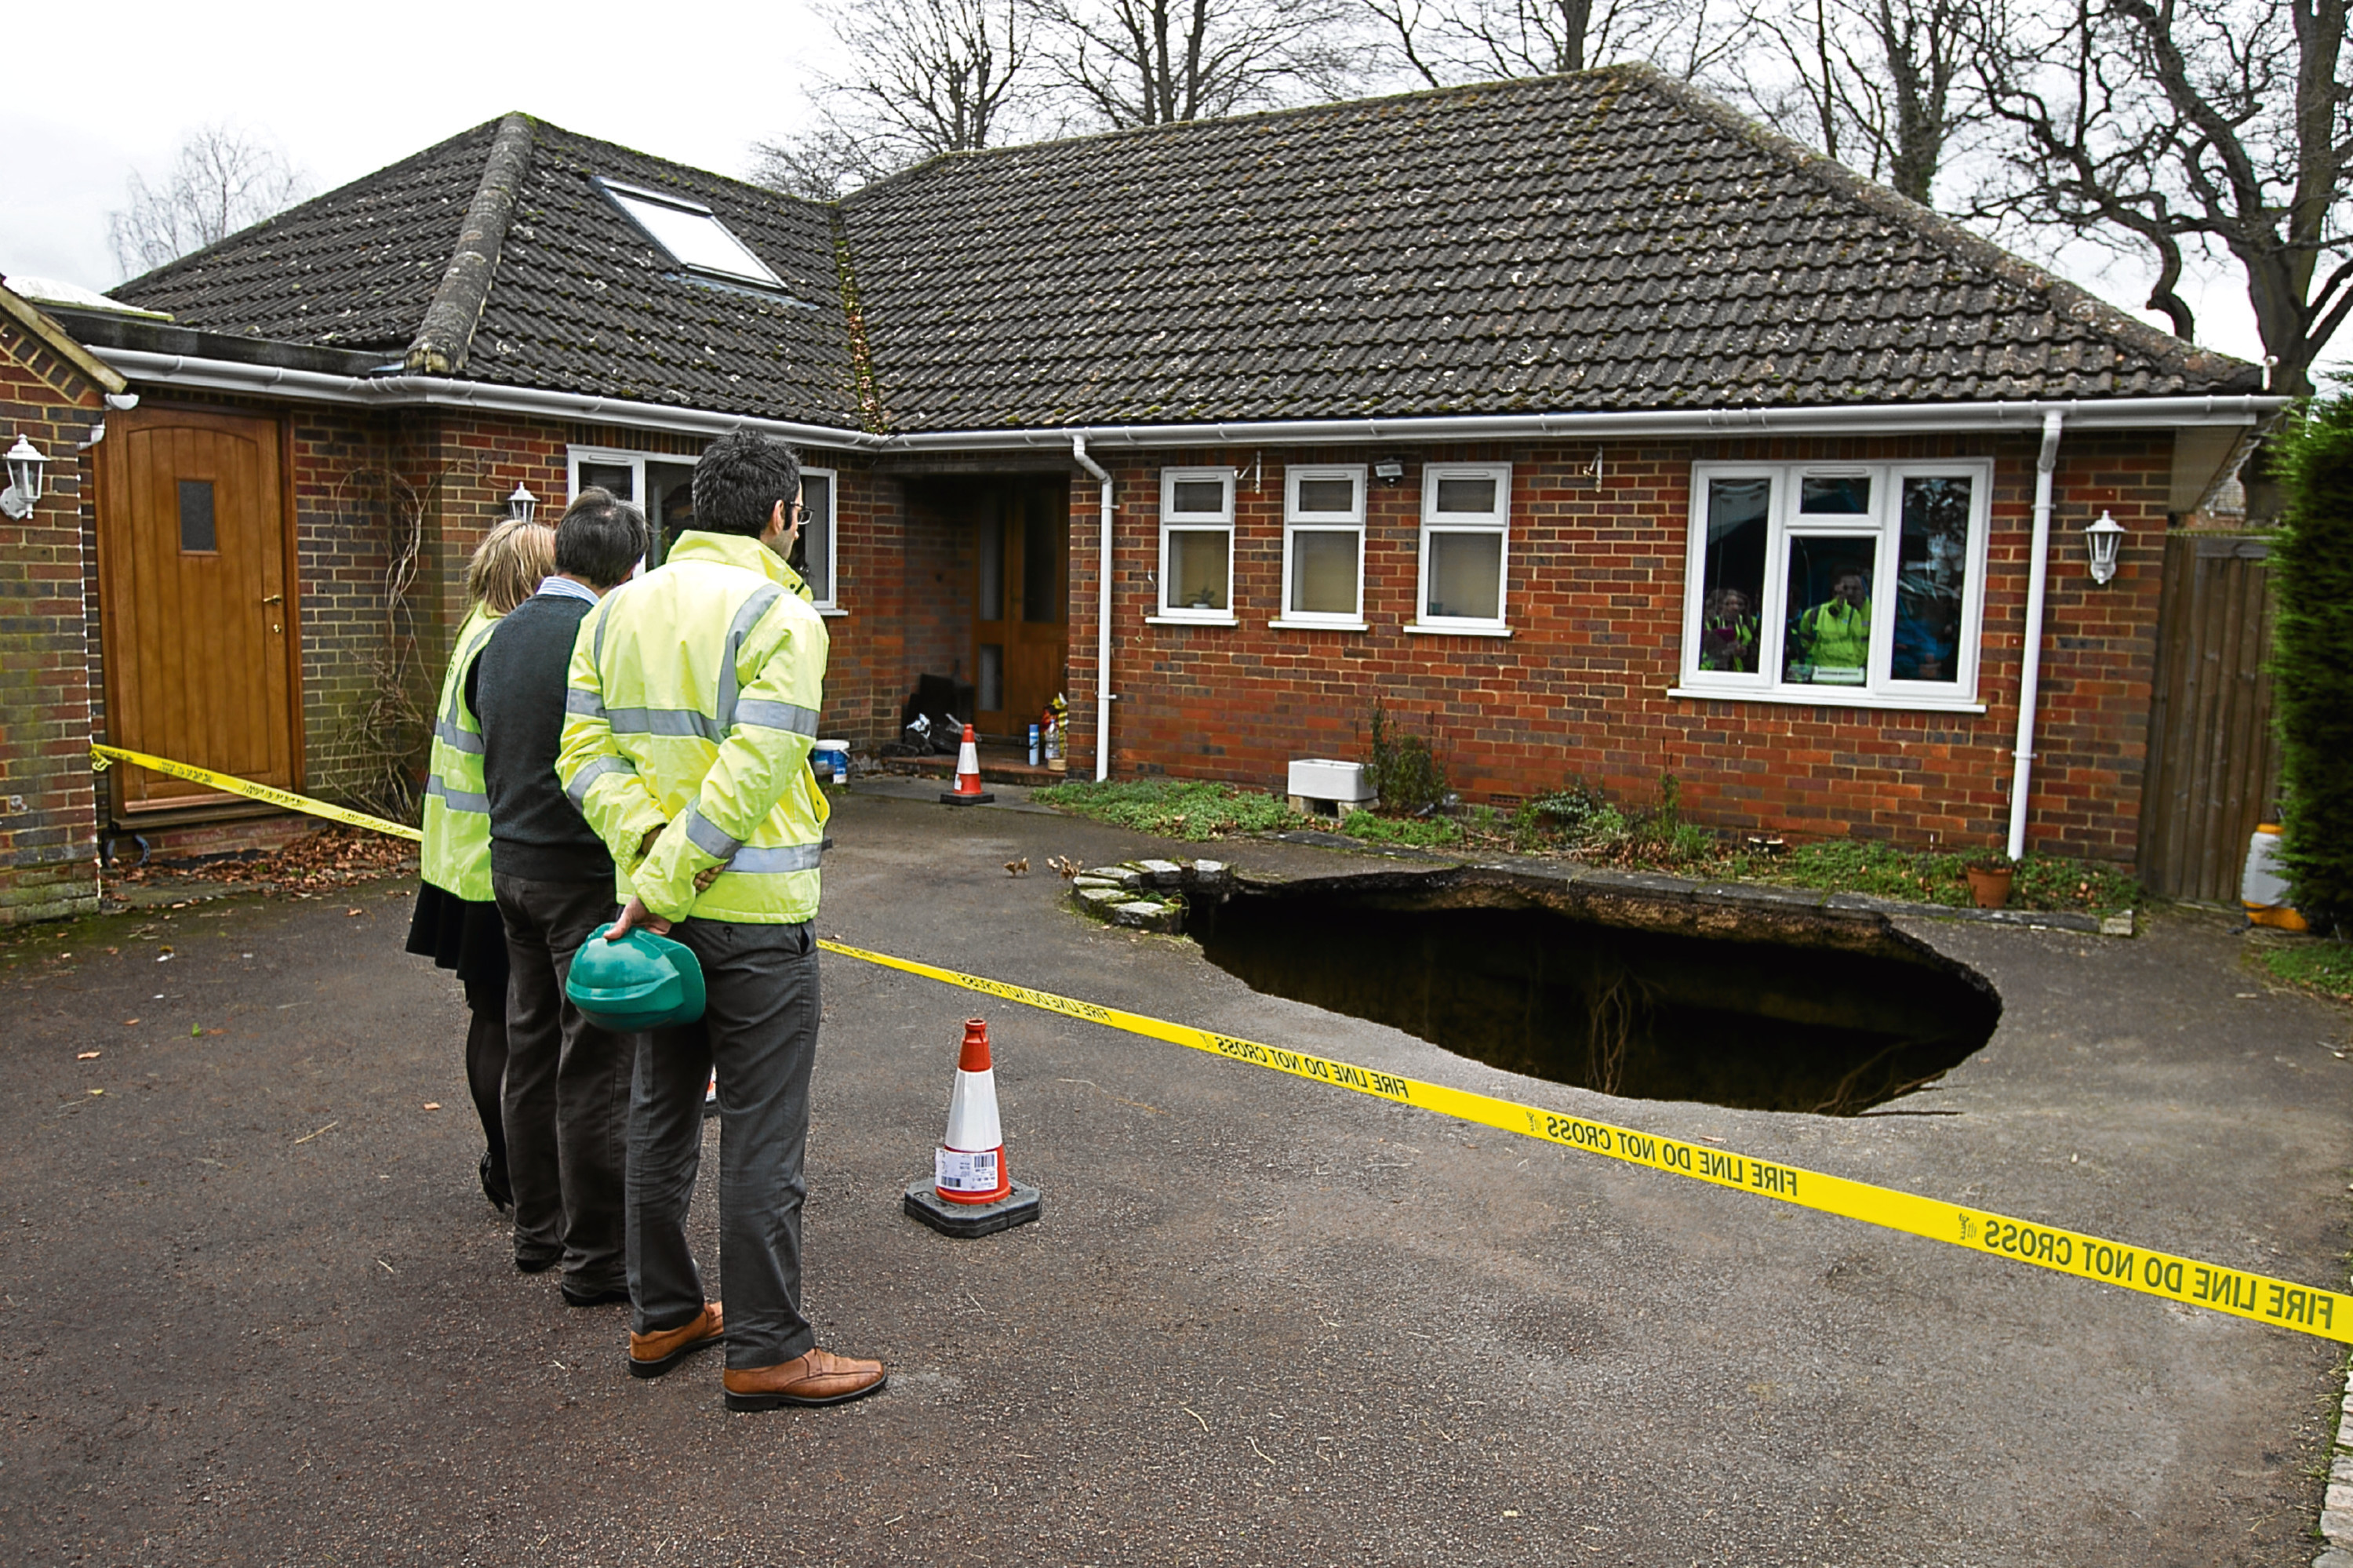 Surveyors at the home of Phil and Liz Conran, in Main Road, Walter's Ash, High Wycombe, Buckinghamshire, after a 30ft-deep sinkhole opened up in the driveway yesterday and swallowed his car.